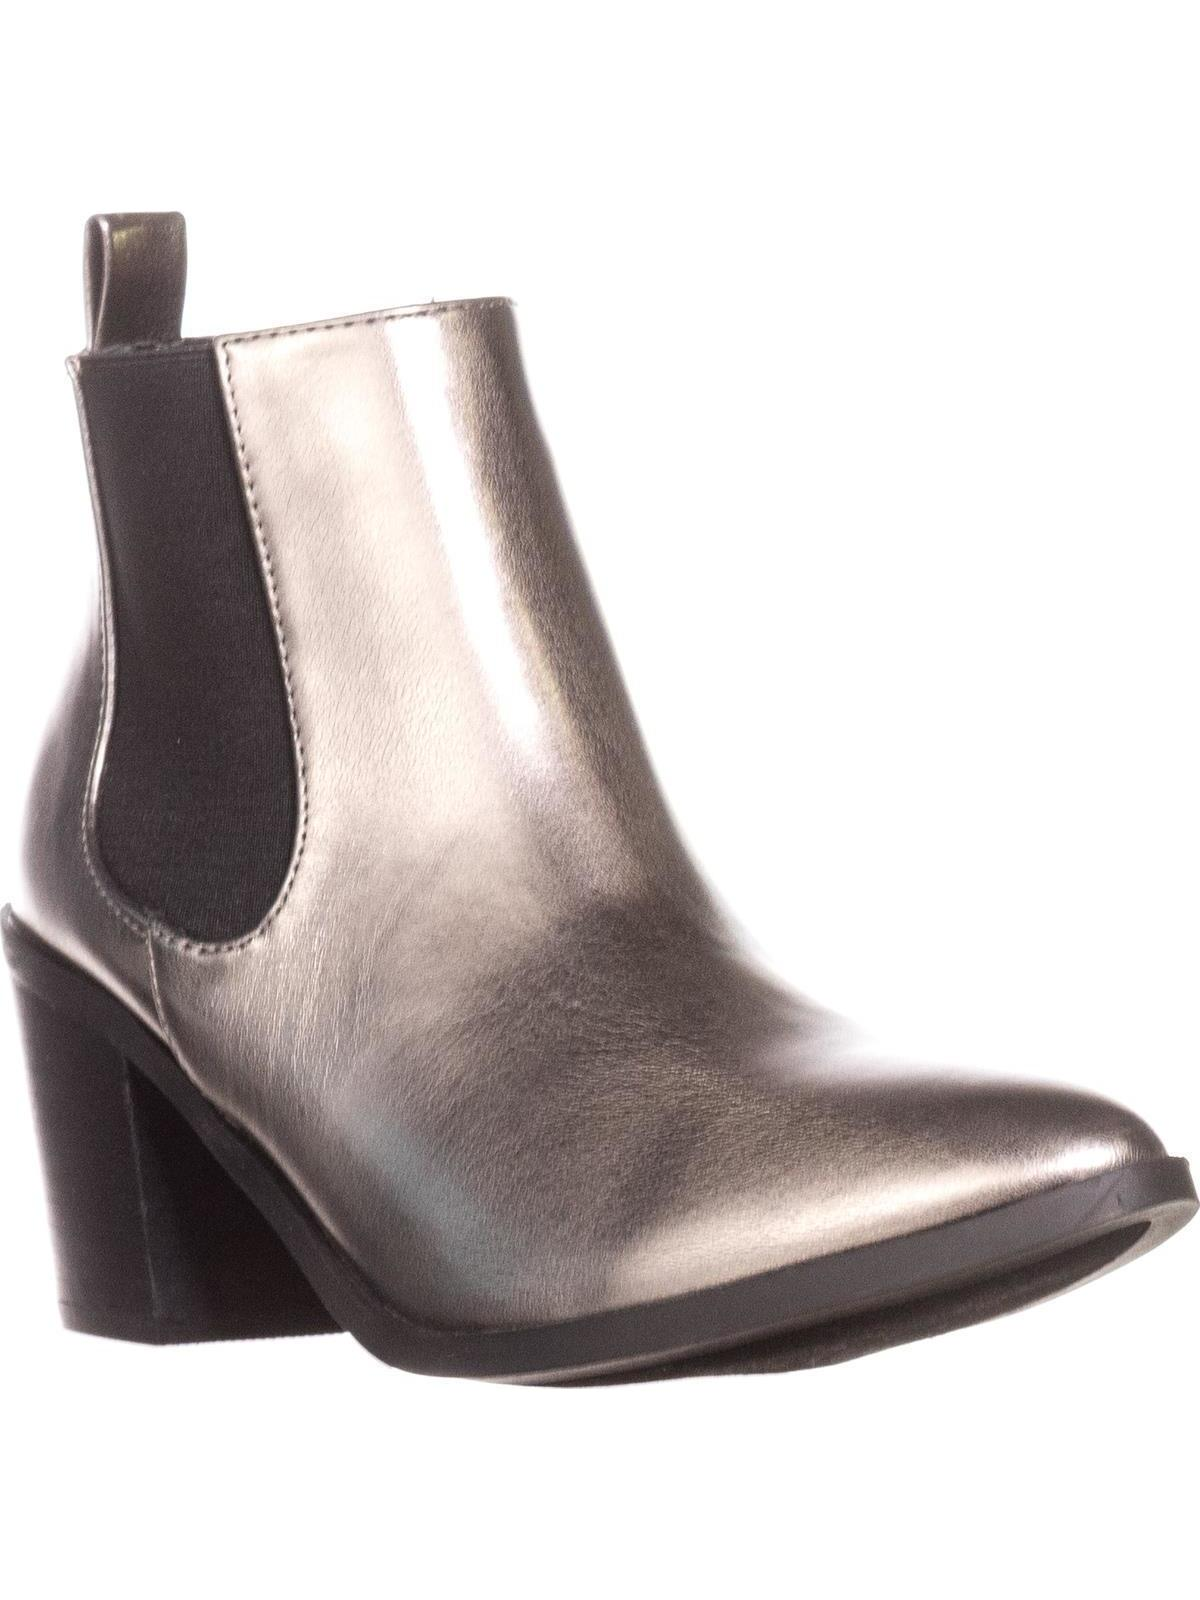 madden girl Barbiee Pull On Ankle Boots